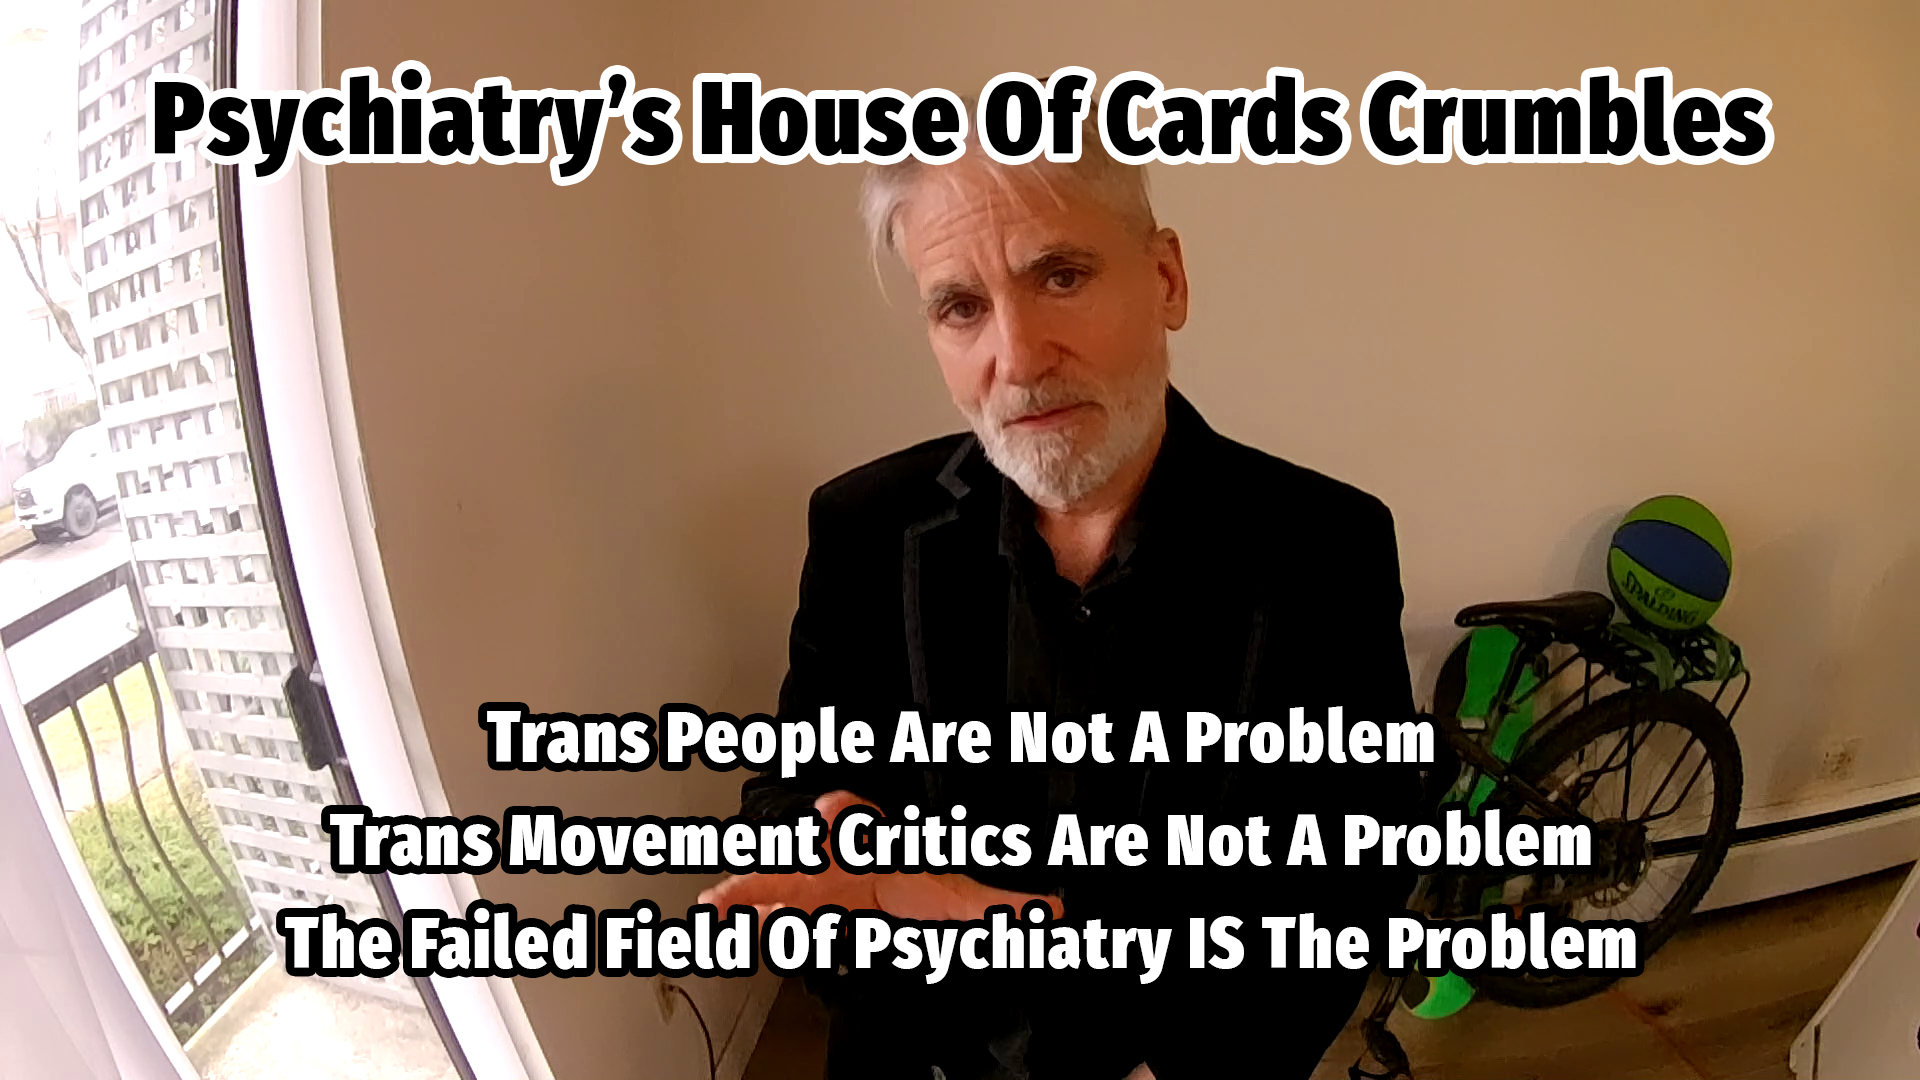 Trans: Psychiatry's House Of Cards Crumbles